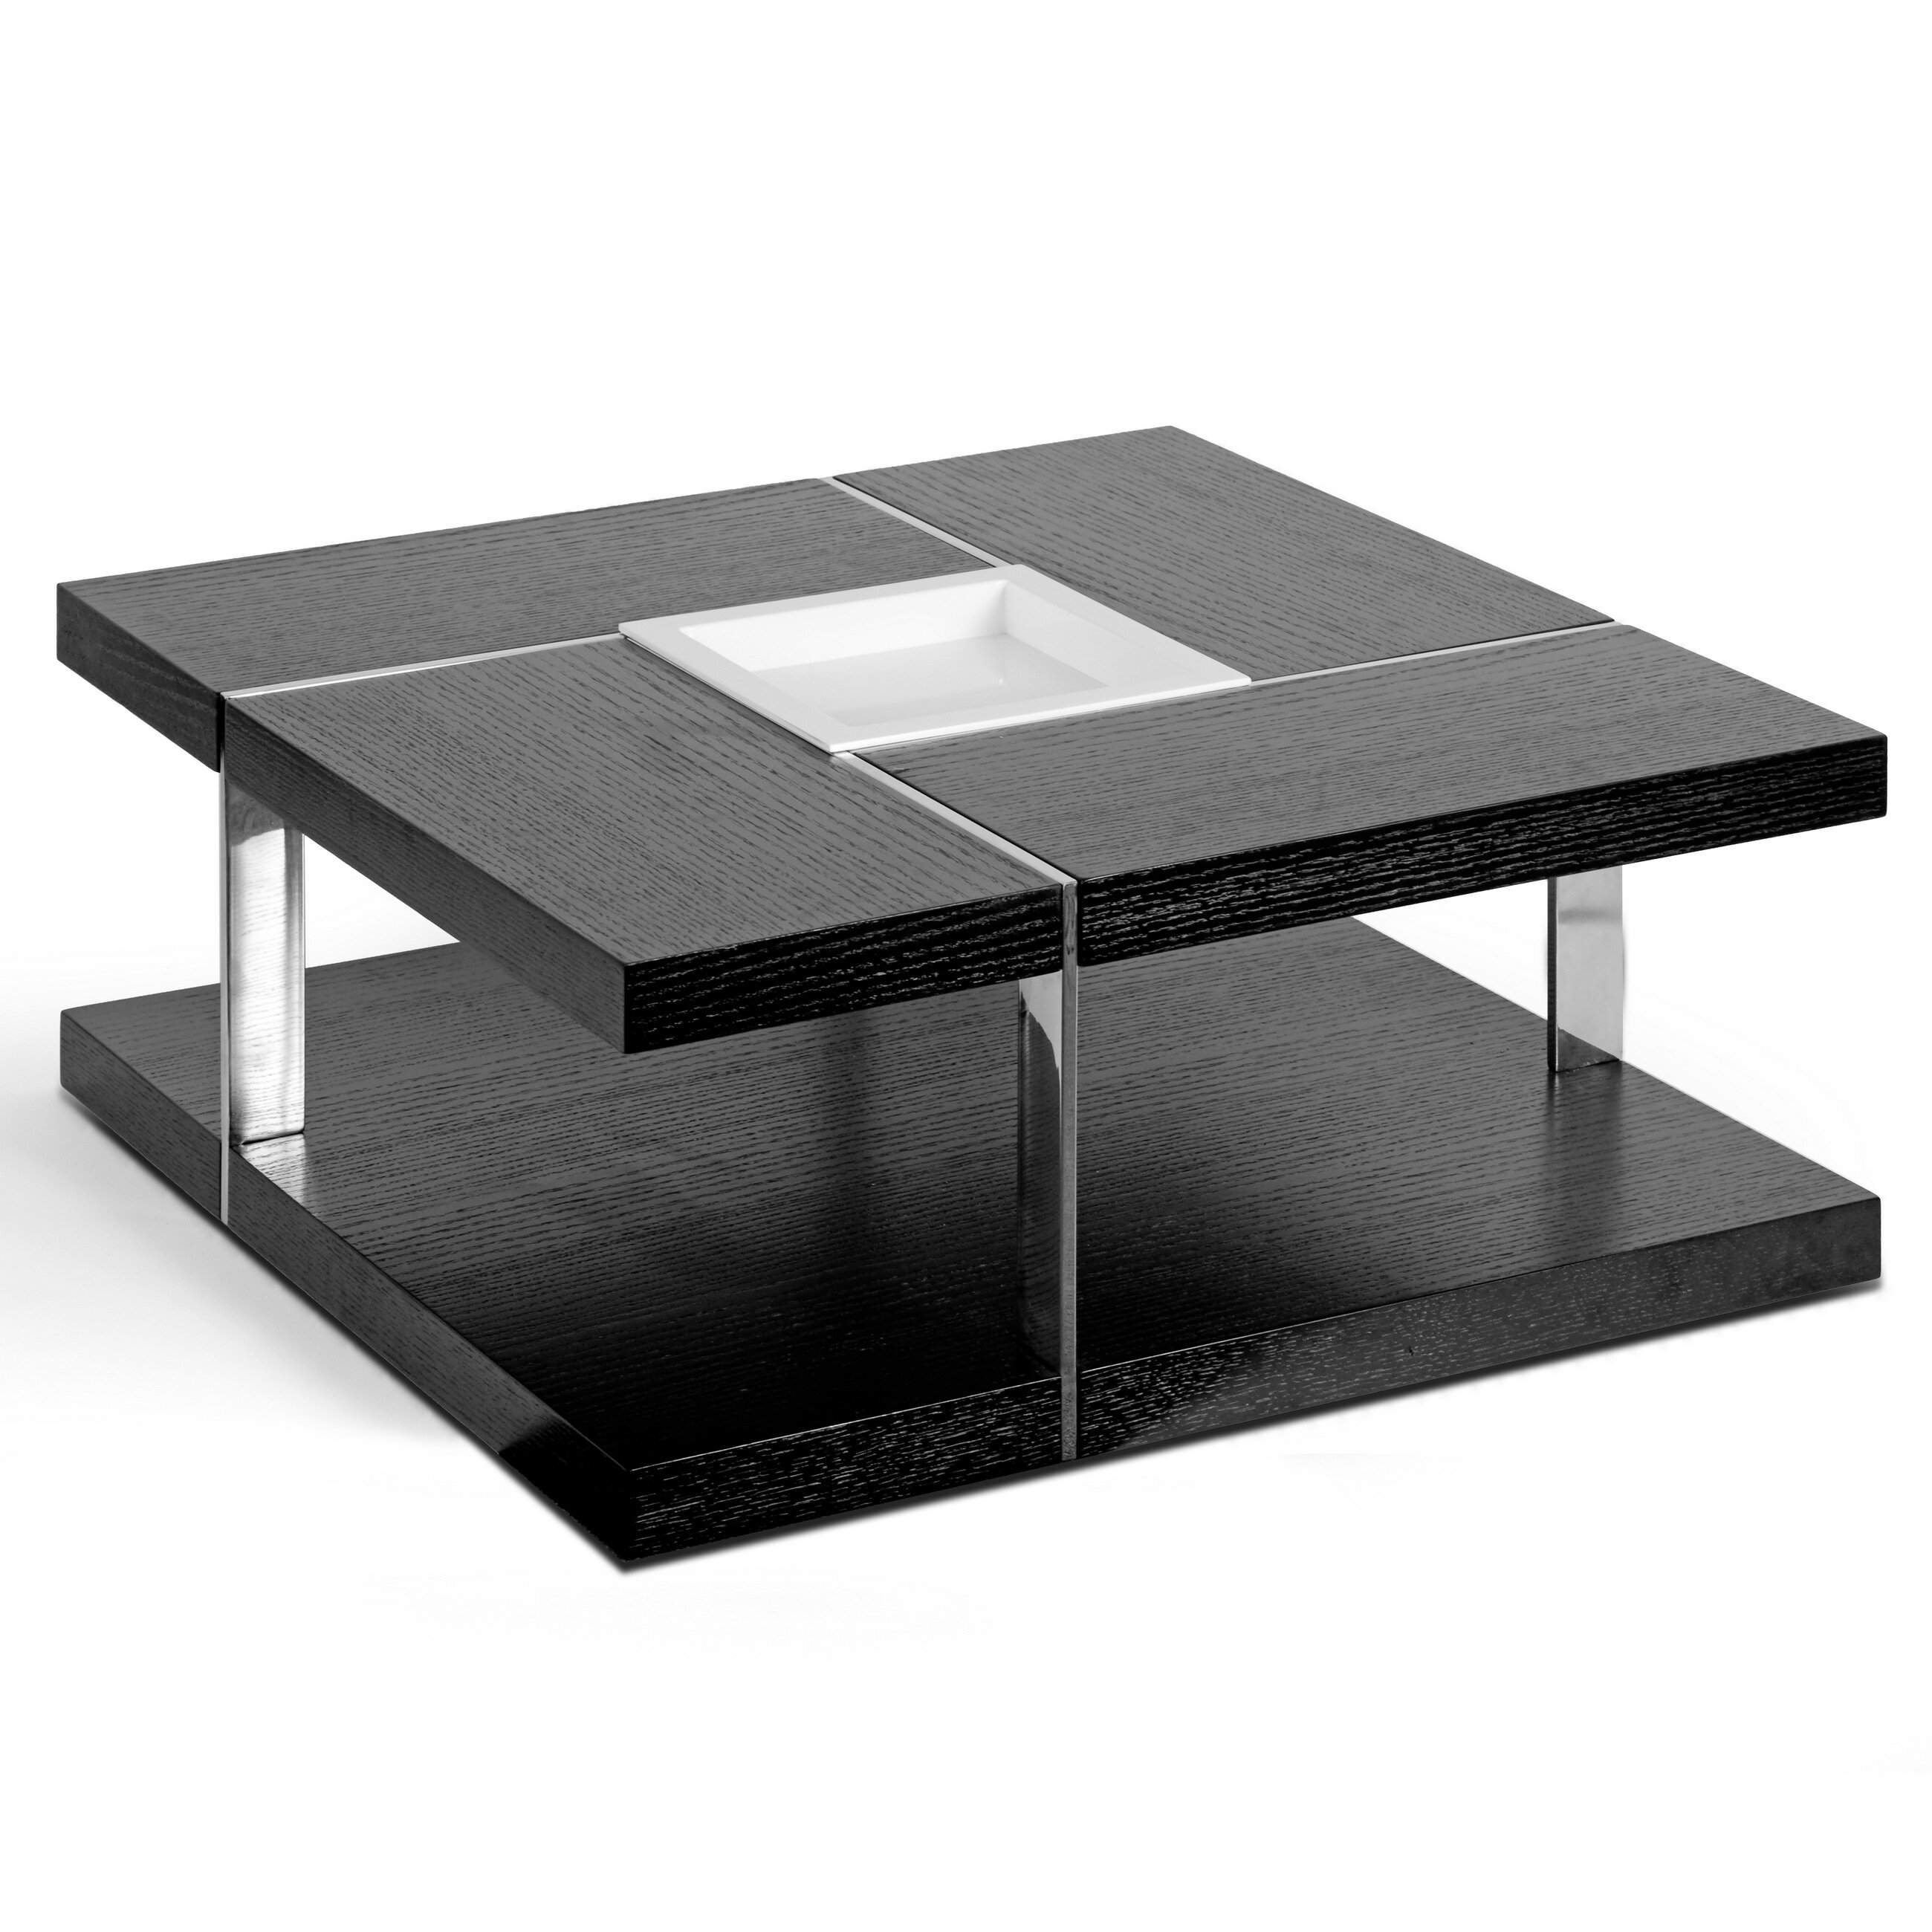 Glamour home decor aira square coffee table with tray top wayfair Decorative trays for coffee tables